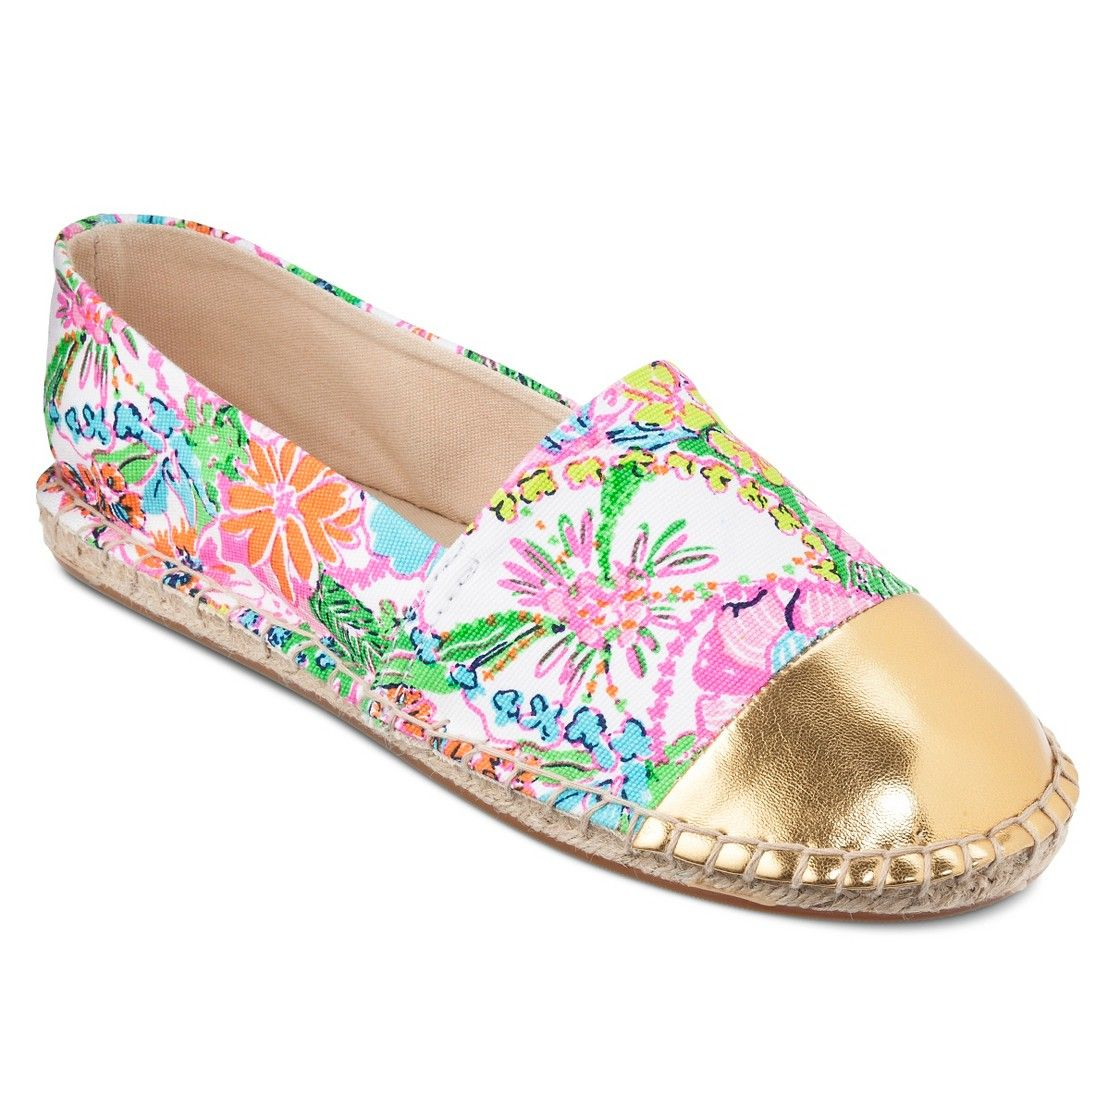 Lilly Pulitzer for Target Girls' Espadrilles - Nosie Posey